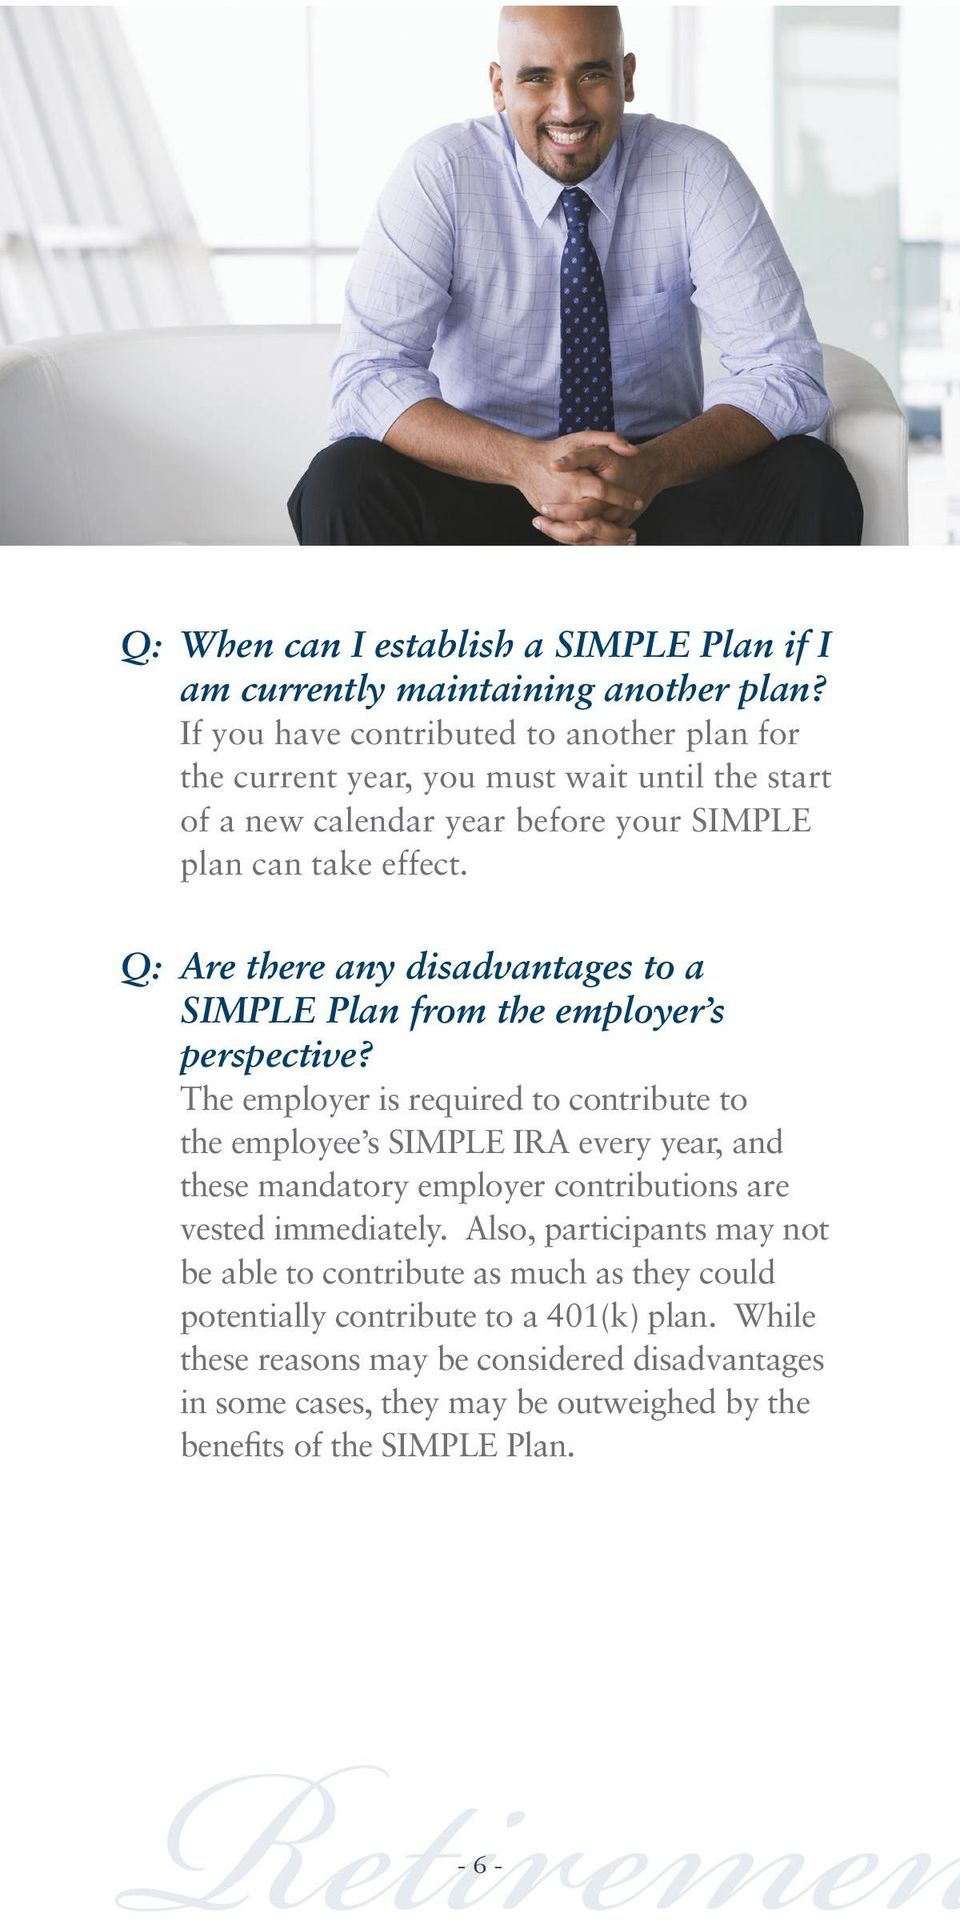 Q: Are there any disadvantages to a SIMPLE Plan from the employer s perspective?